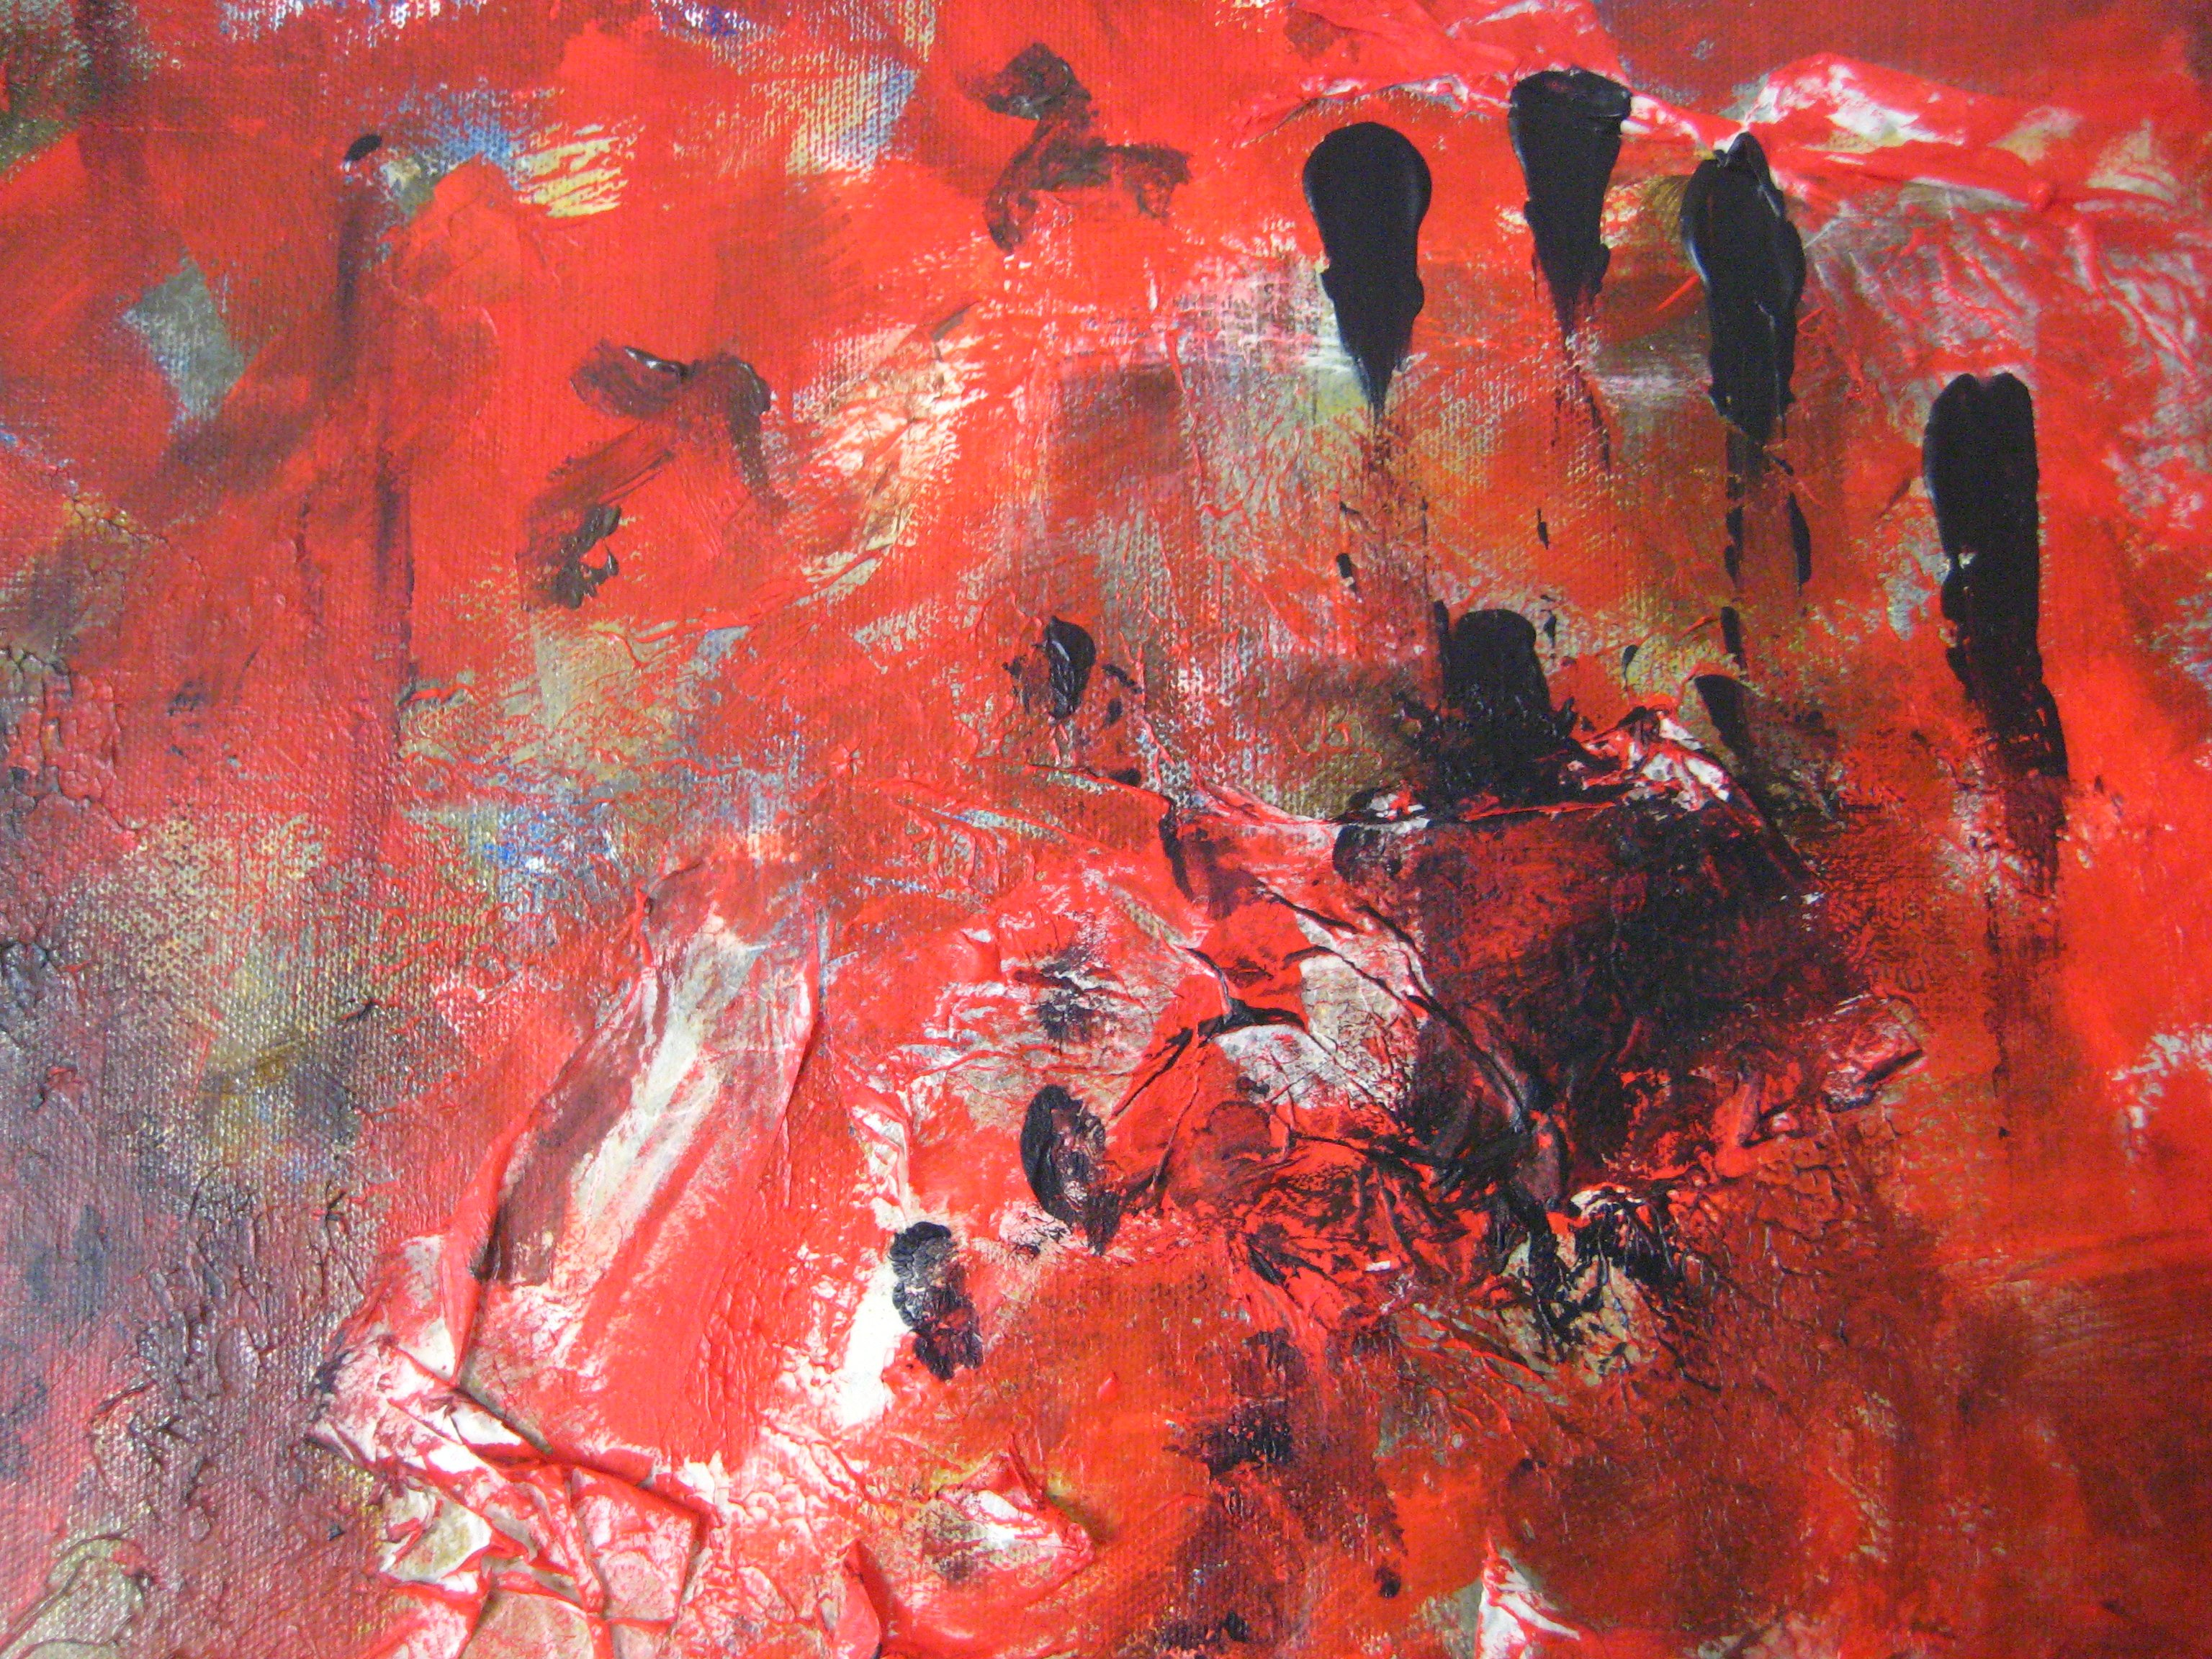 Symphony in Red, Mixed Media on Canvas, by Sabrina Brett 2